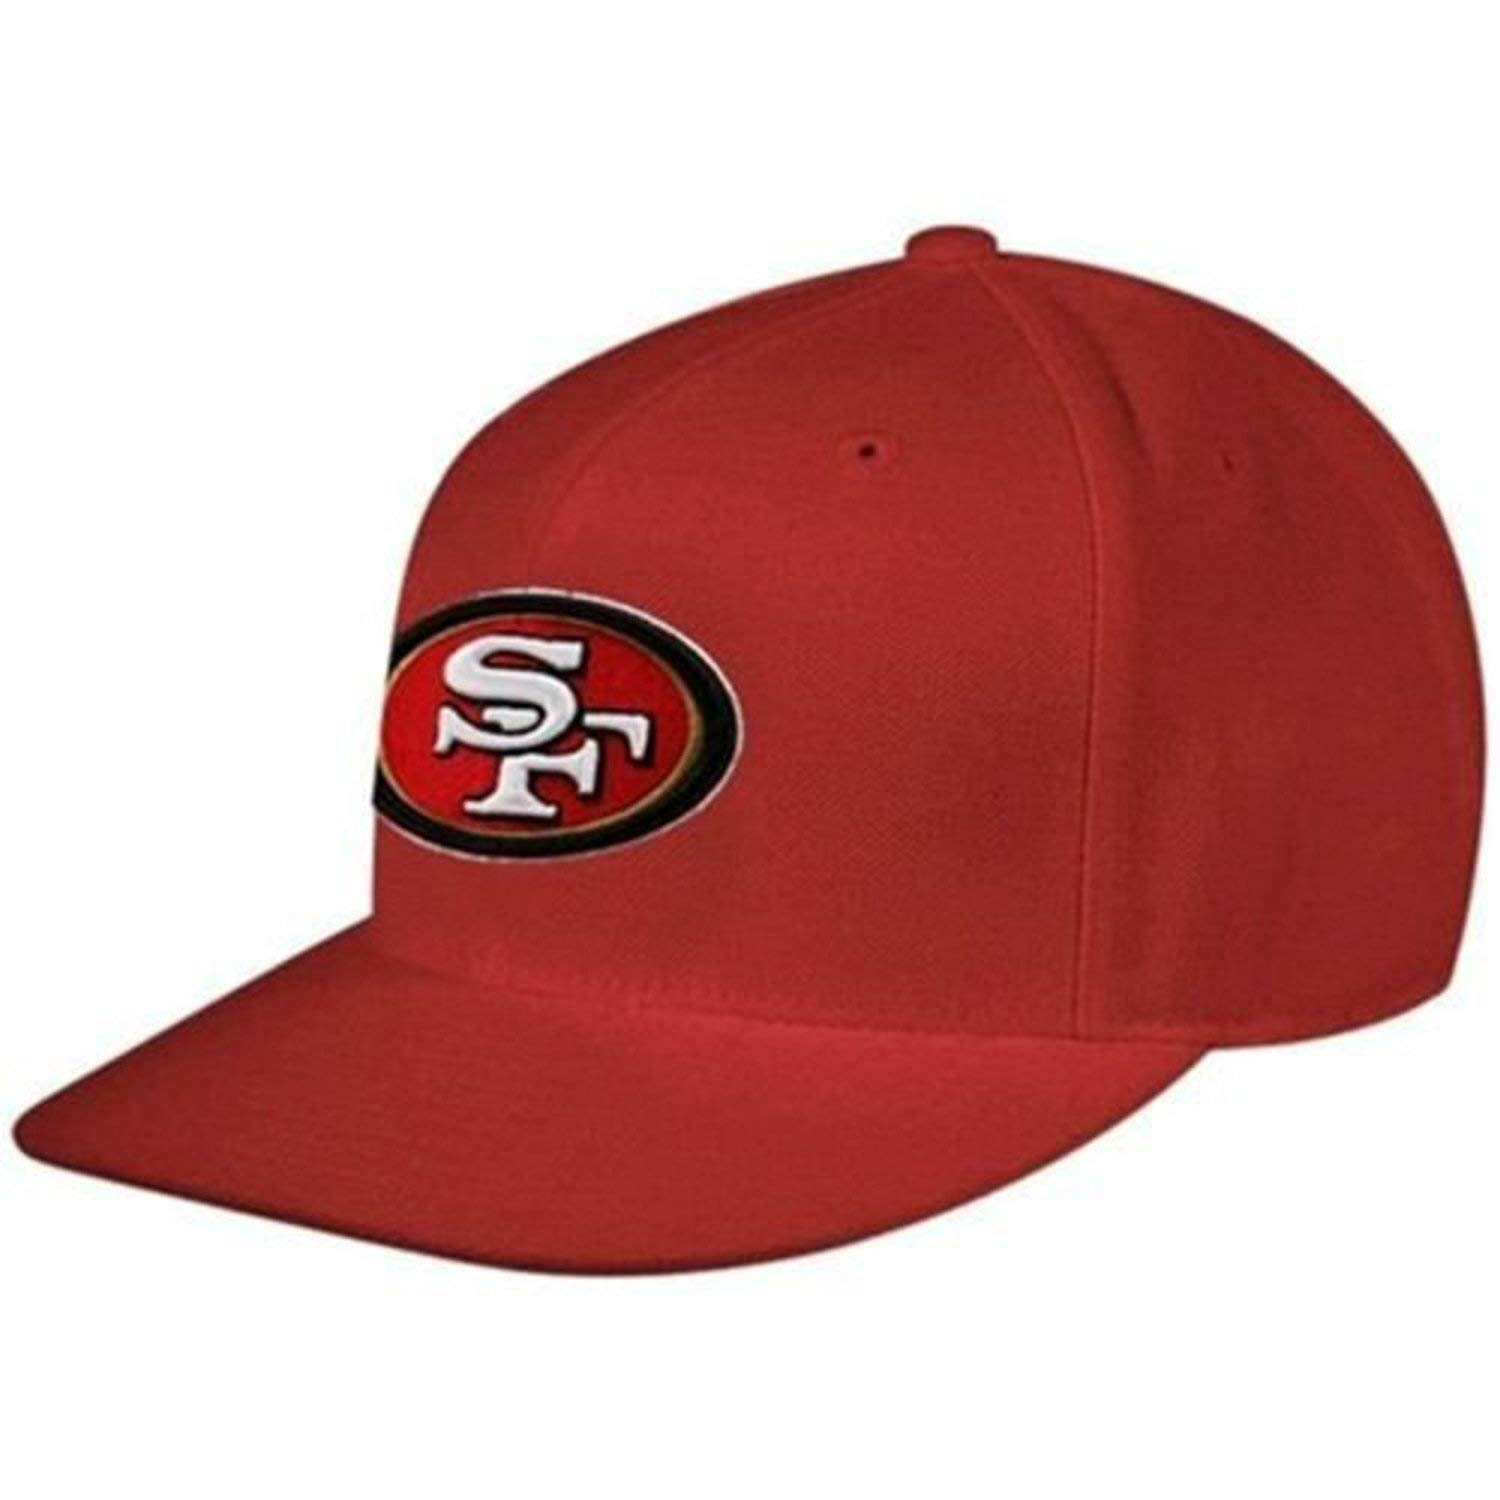 designer fashion 1c9e5 0707f Amazon.com  Reebok Men s NFL Hat San Francisco 49ers Flat Brim Red Fitted  Headwear Cap 7 5 8  Sports   Outdoors